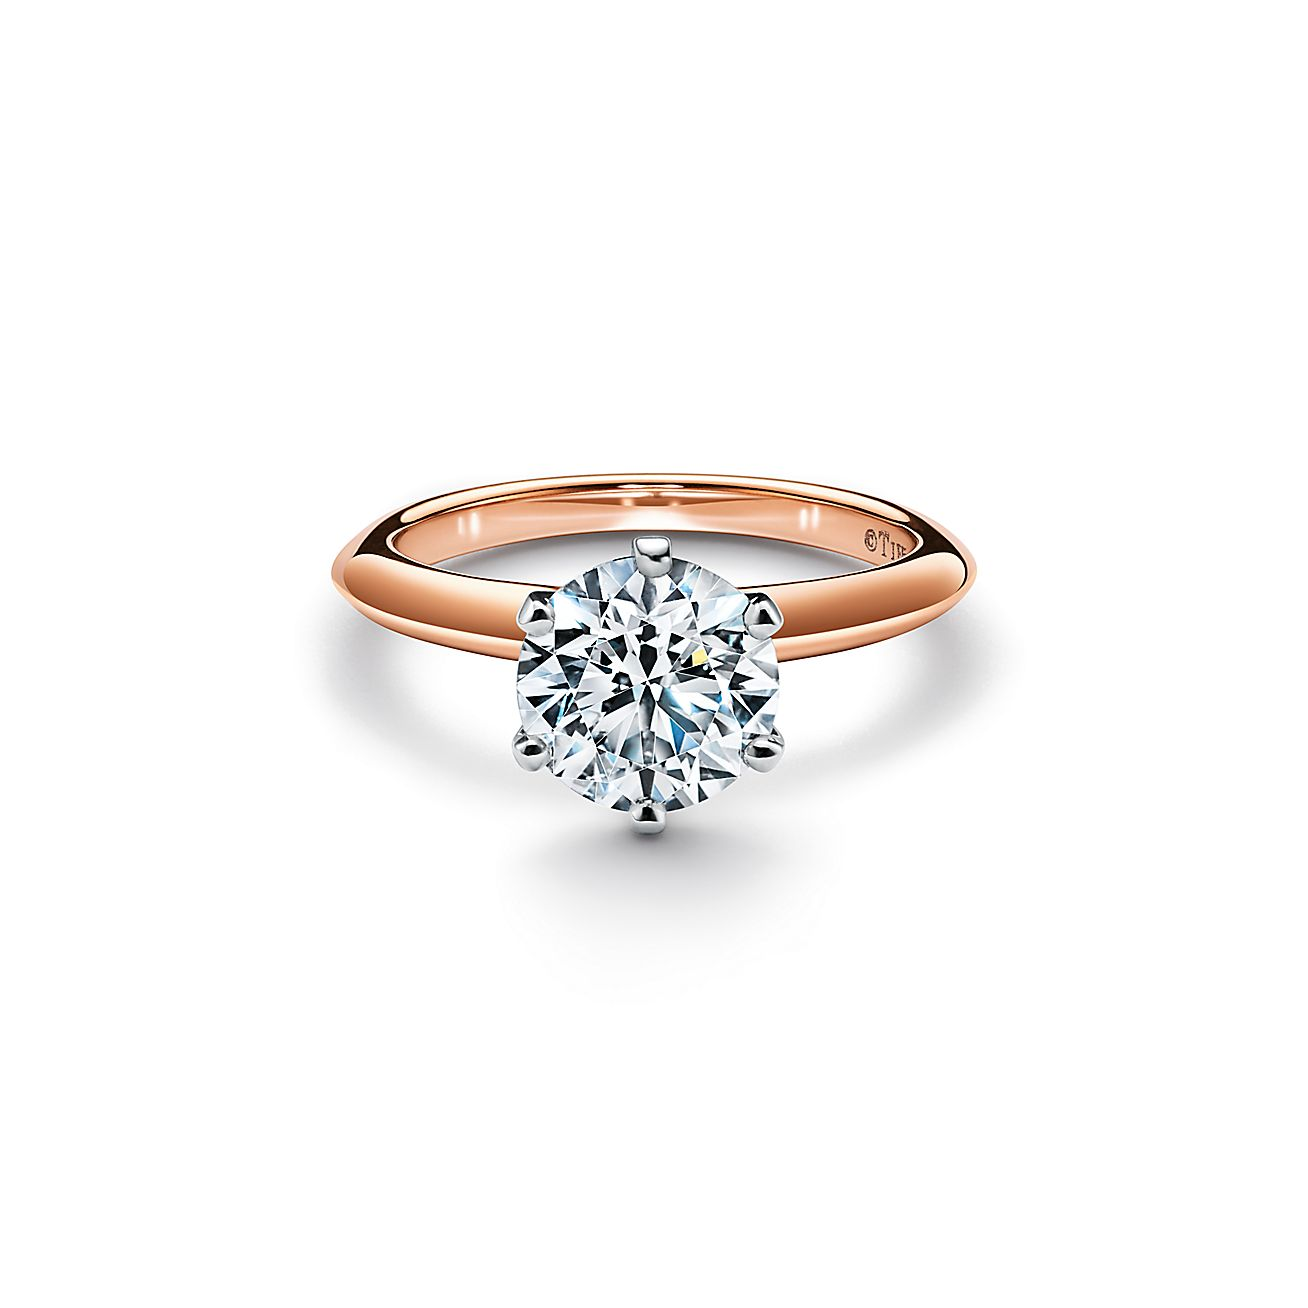 The Tiffany Setting Engagement Ring In 18k Rose Gold